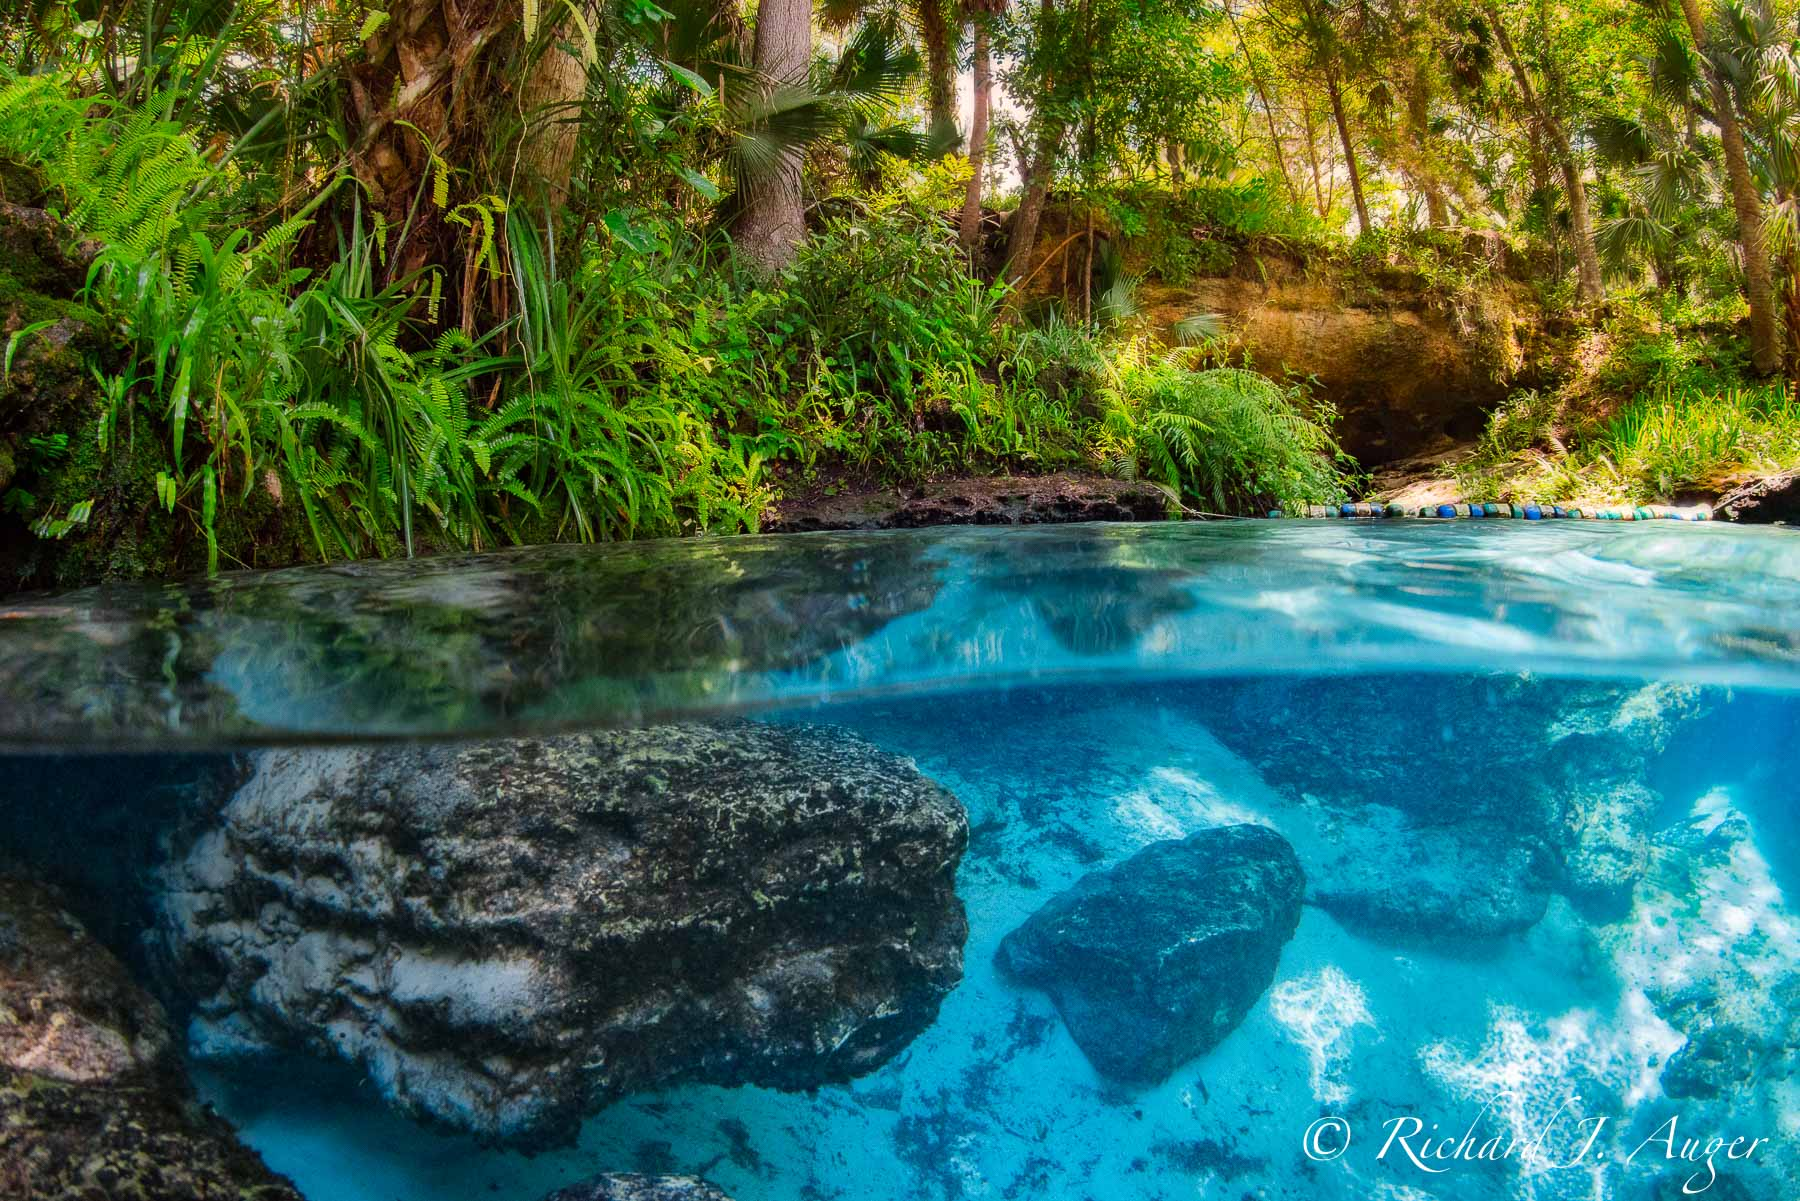 Kelly Park, Rock Springs Run, Apopka, Orlando, Florida, Underwater, Under Over, Split Photograph, Caves, Sand, Photograph